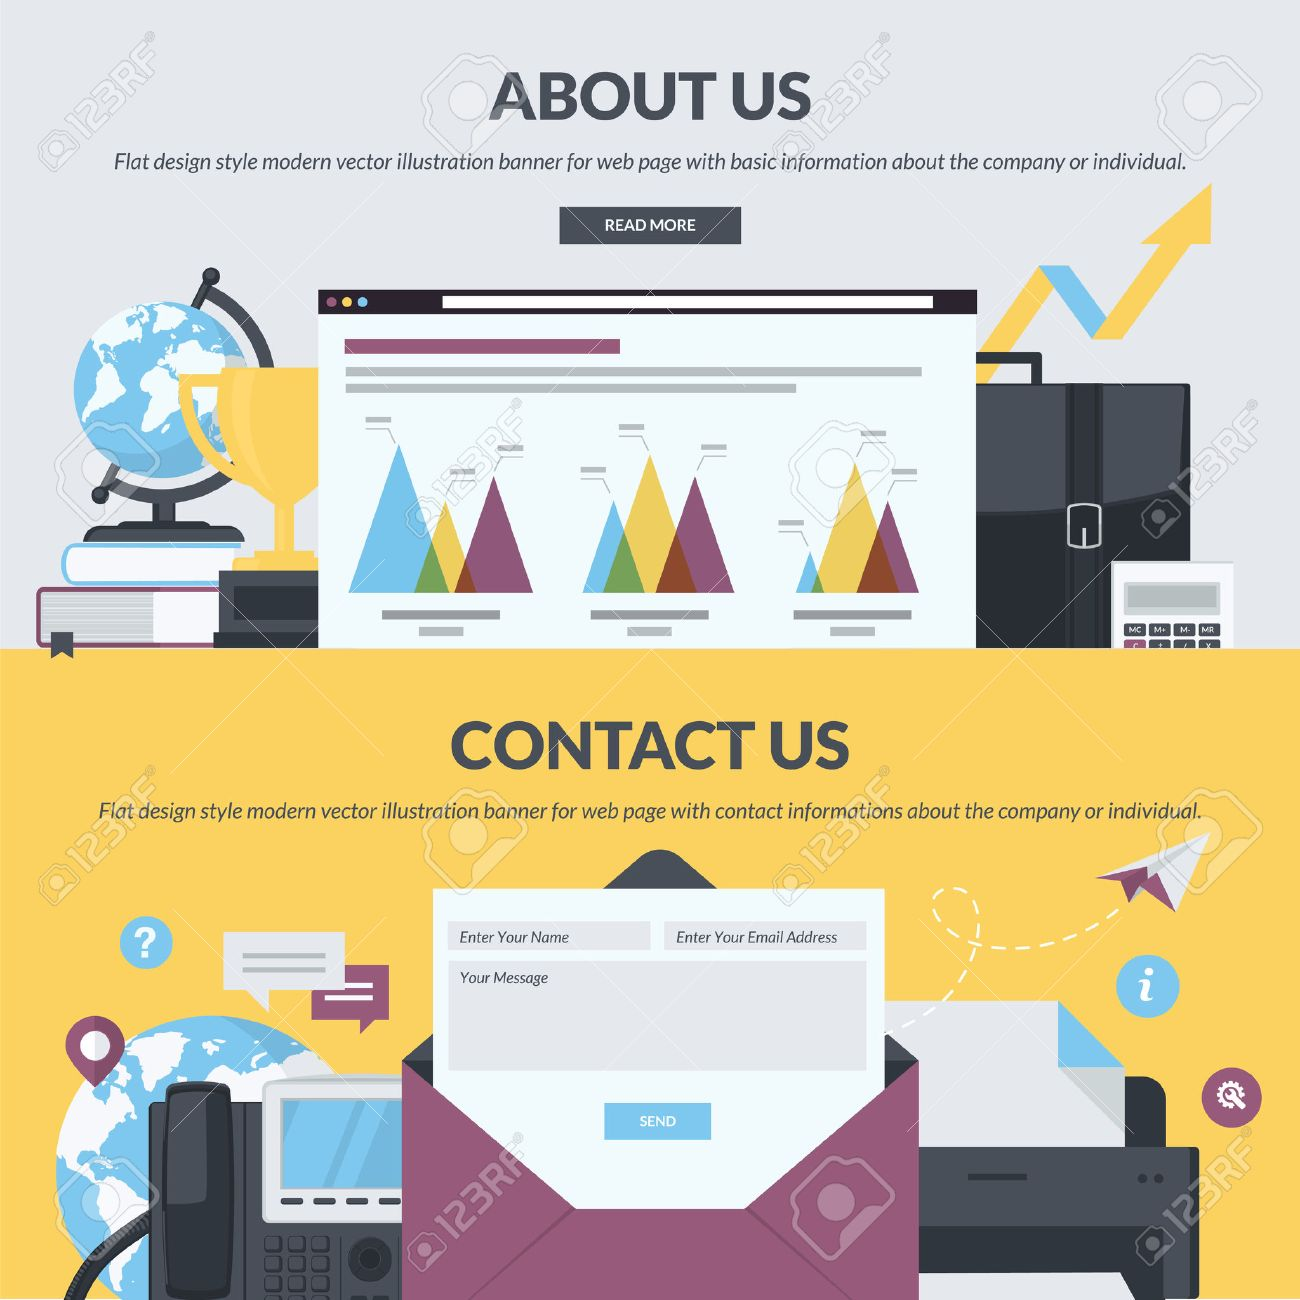 Set of flat design style banners for web pages with basic and contact information about the company or individual. - 39209296